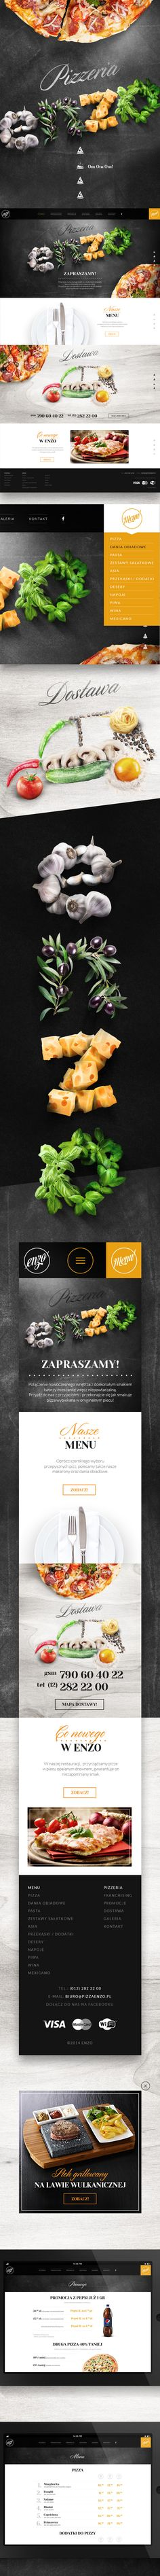 Pizzeria ENZO on Behance | #webdesign